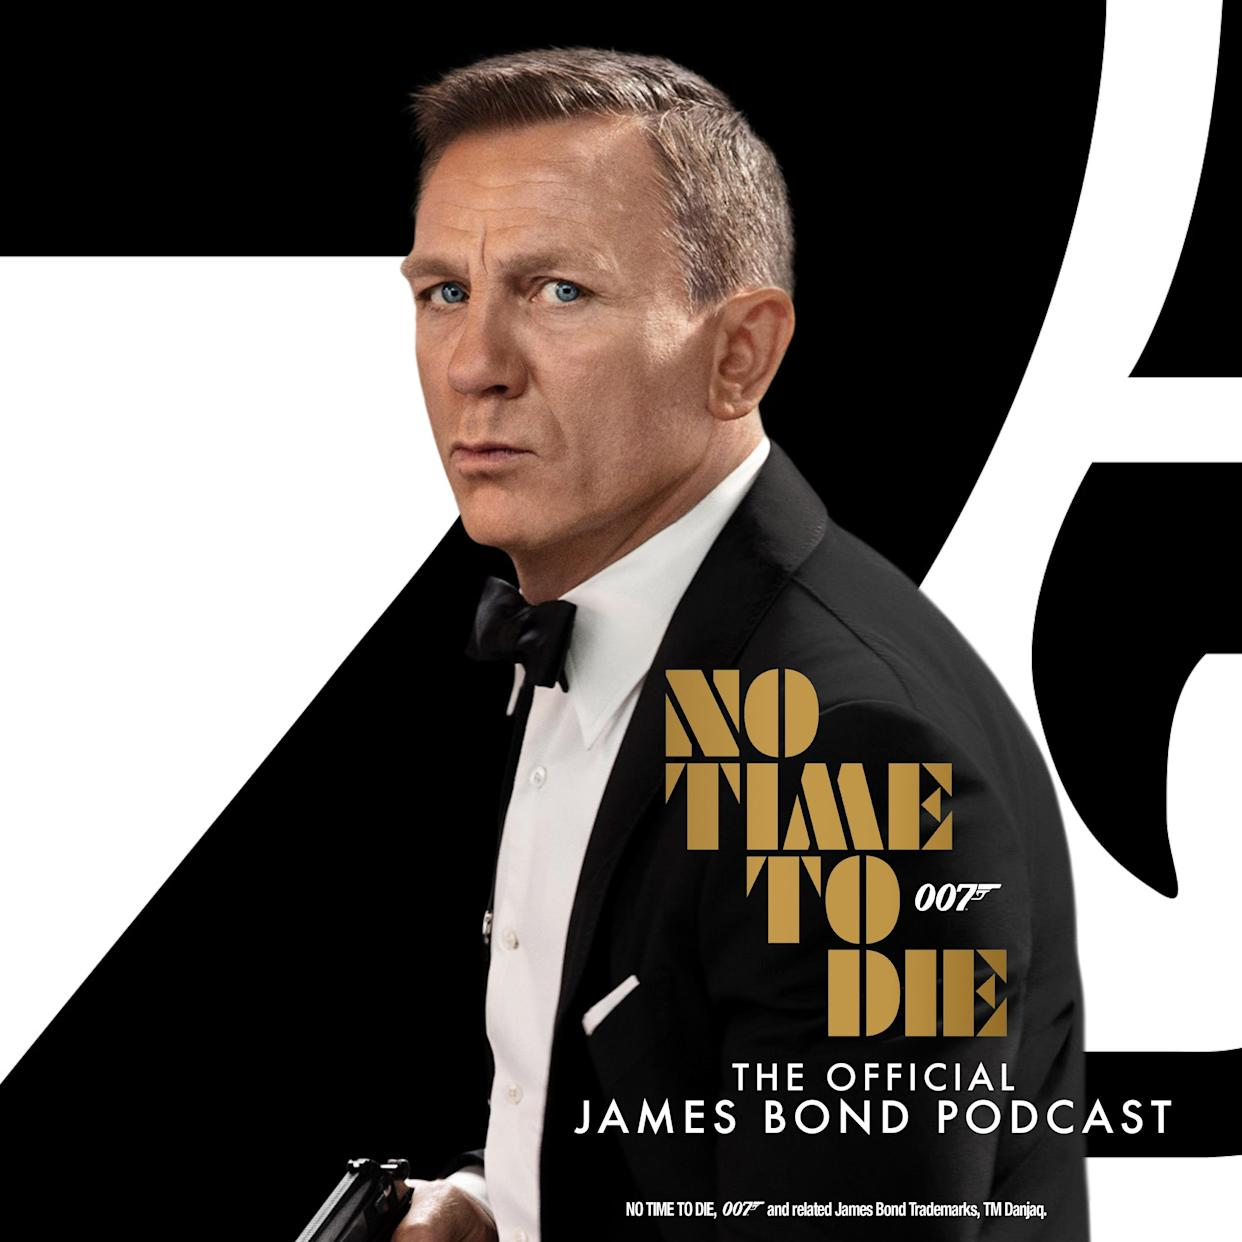 No Time To Die: The Official James Bond Podcast is produced by Somethin' Else in association with Metro Goldwyn Mayer (MGM), Universal Pictures International, United Artists Releasing and EON Productions.